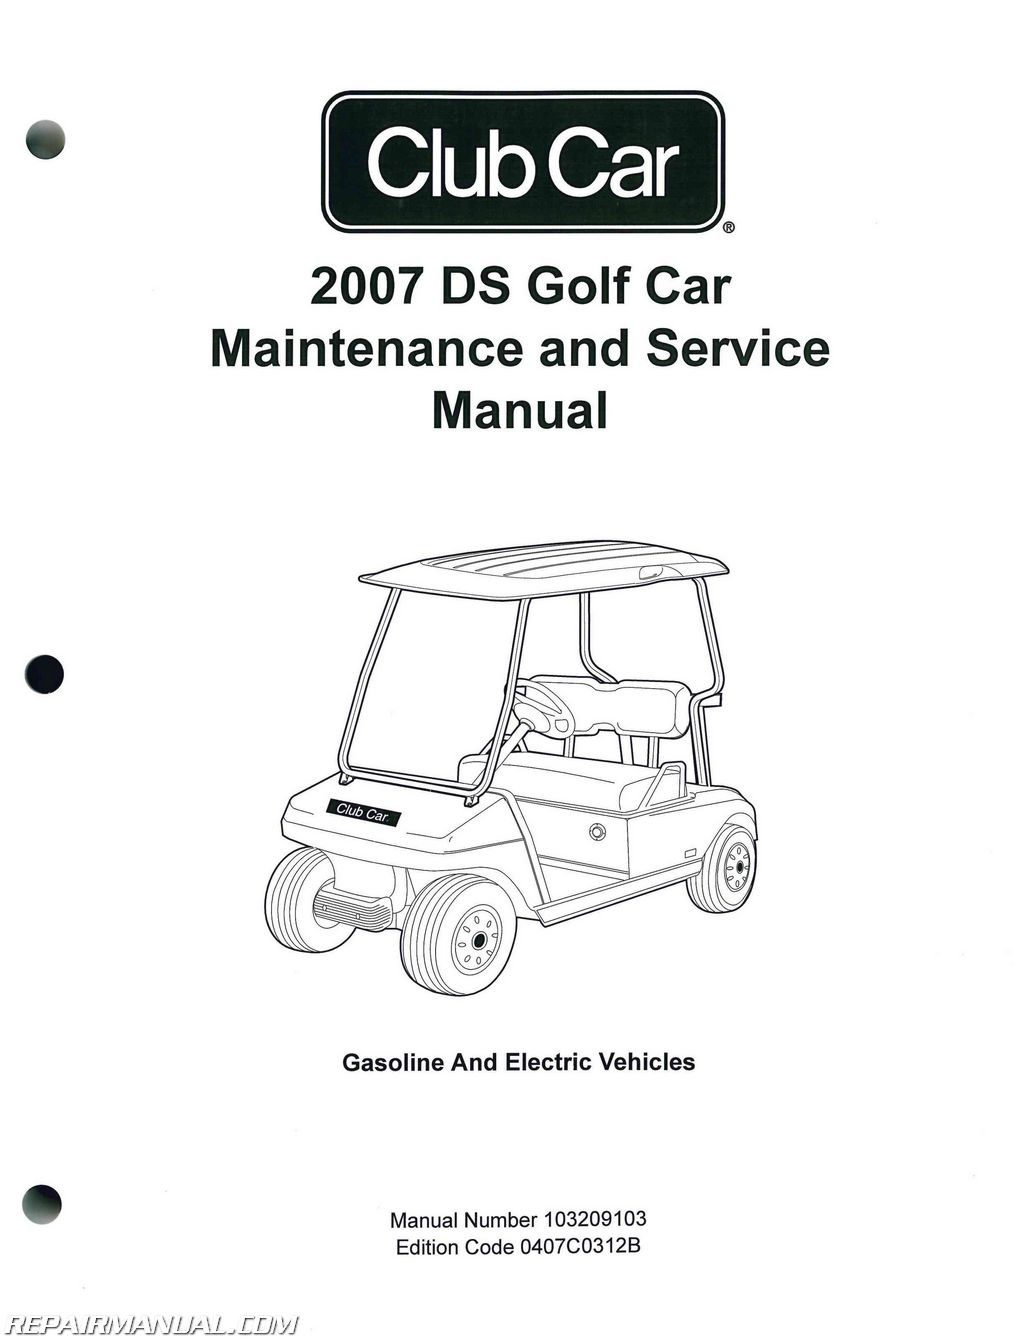 1993 Club Car Ds Wiring Diagram Electrical Schematics Ez Go Golf Cart Owners Manual Pdf Enthusiast Diagrams U2022 Electric